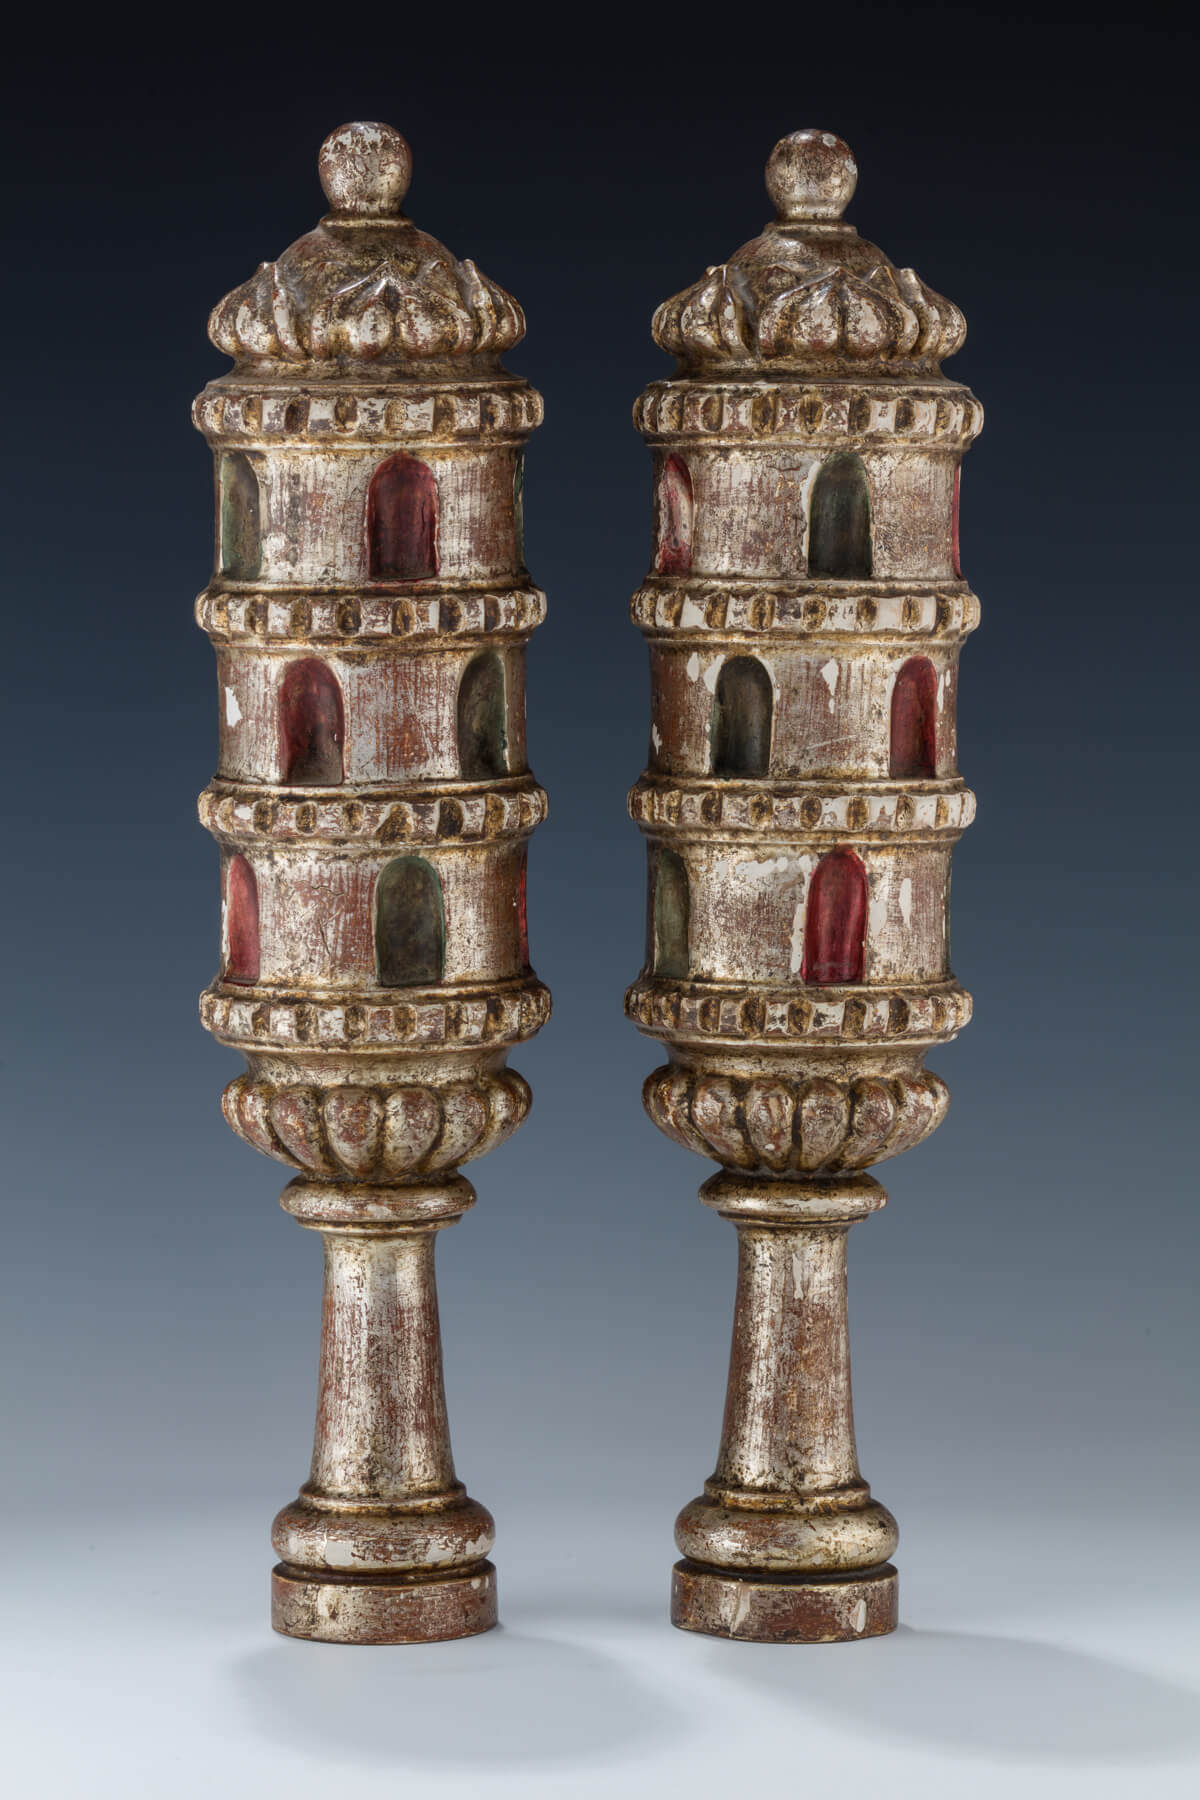 105. A PAIR OF WOODEN TORAH FINIALS